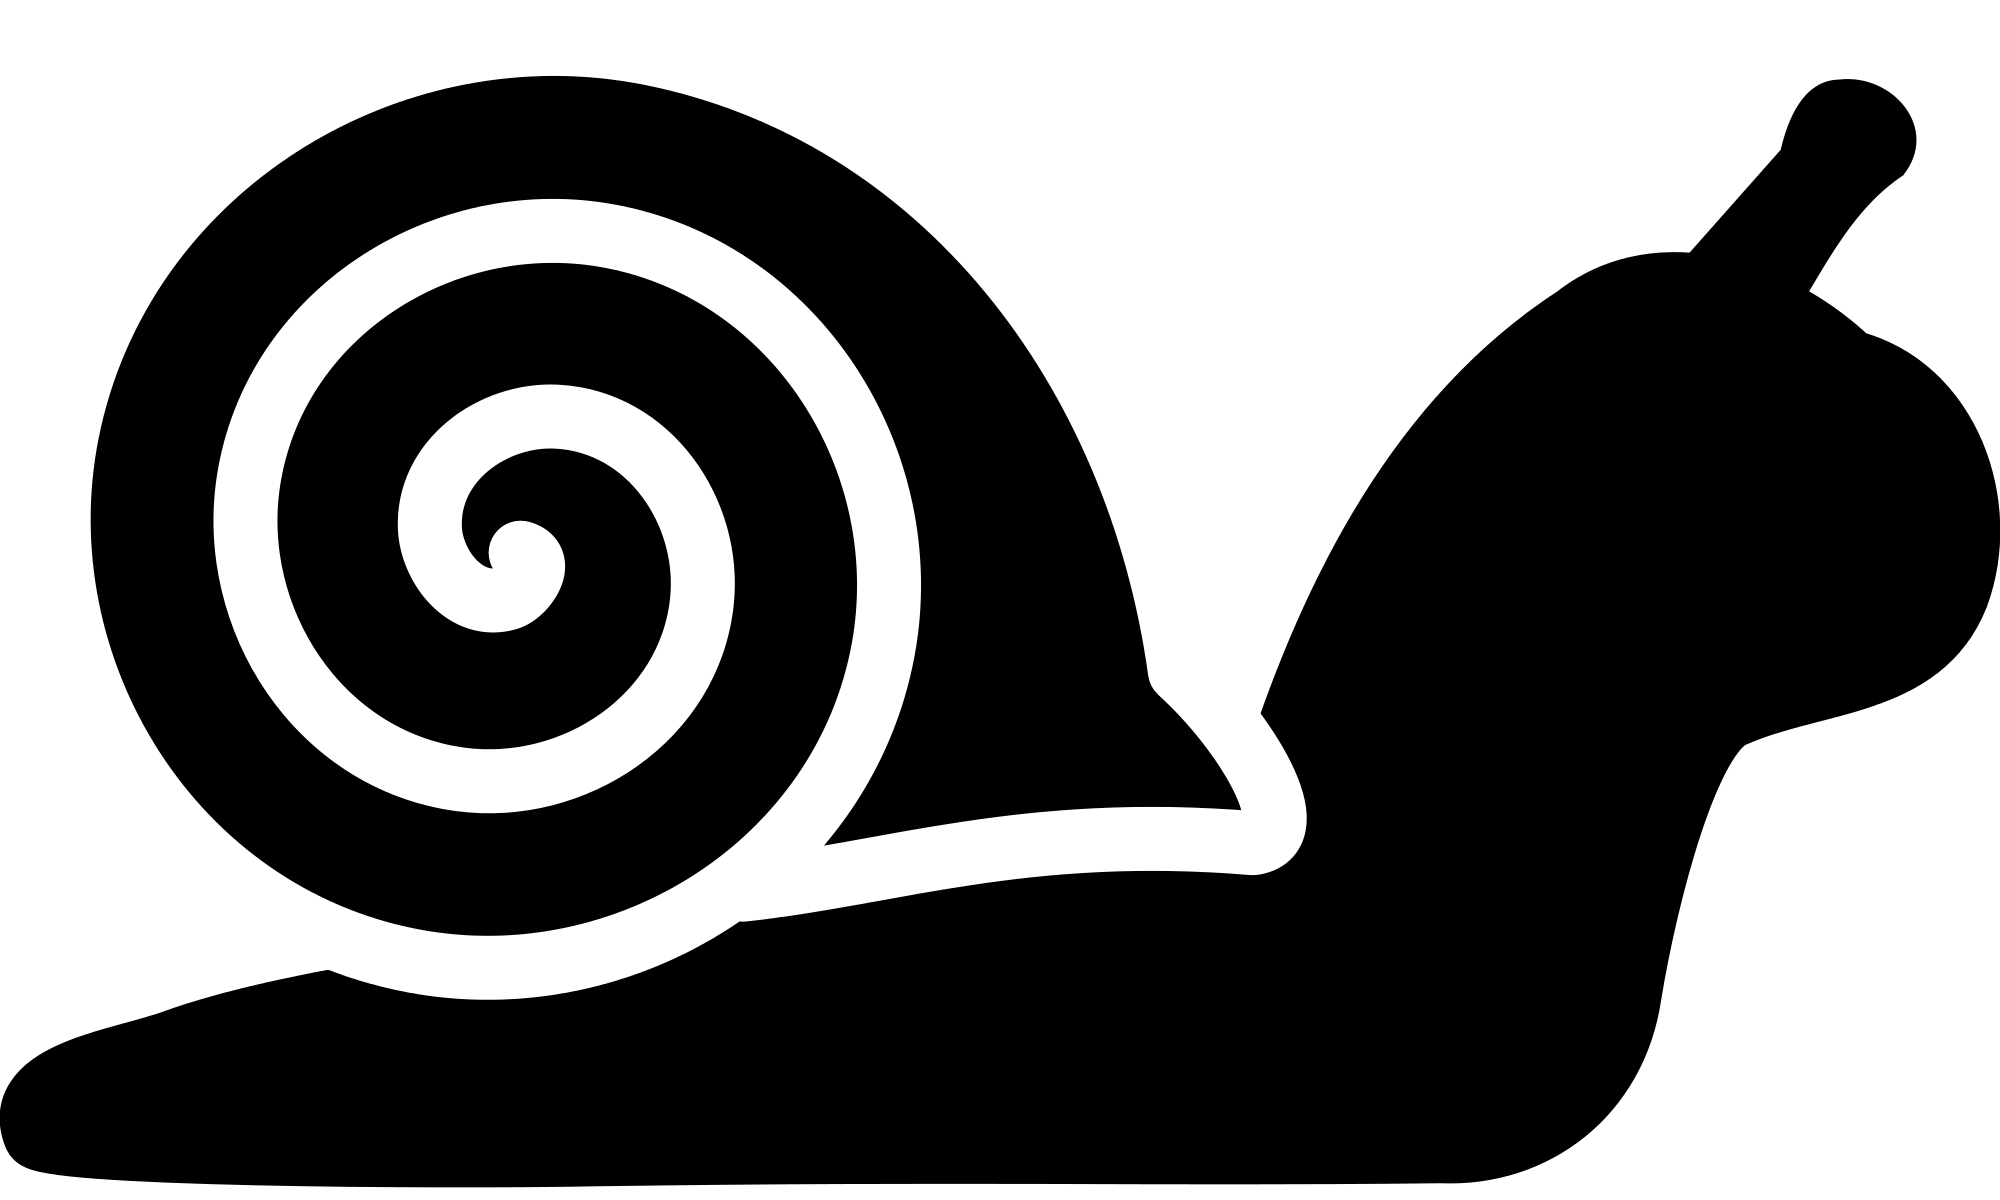 PNG Snail Black And White - 86837